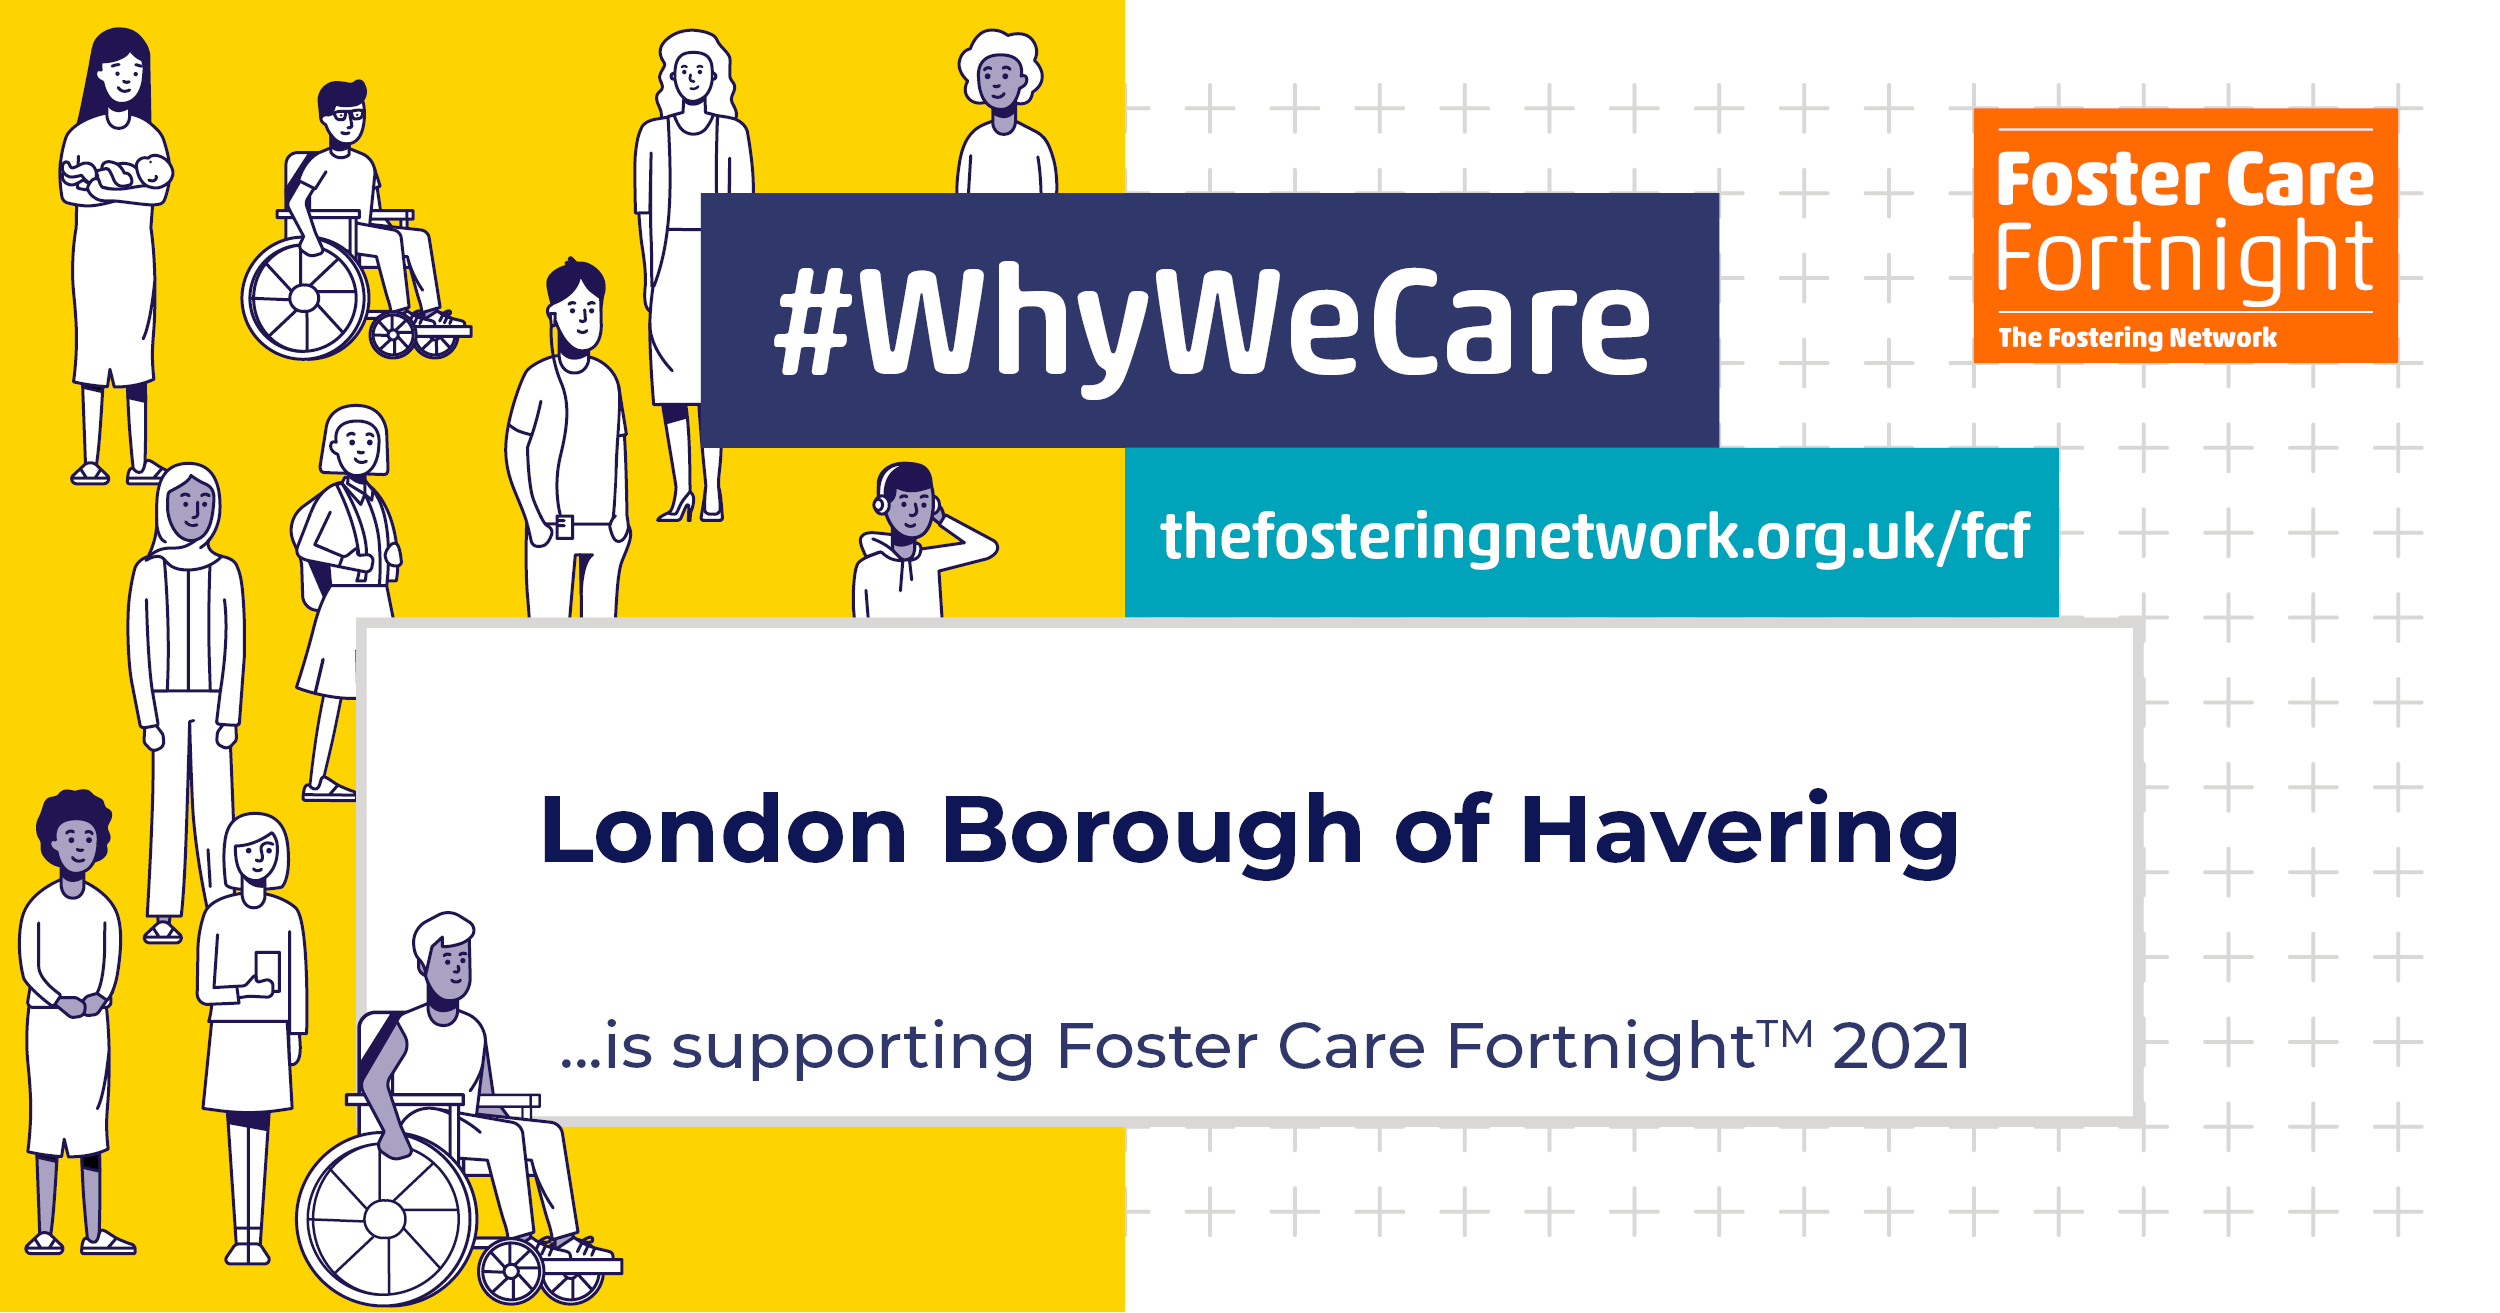 Havering marks Foster Care Fortnight 2021